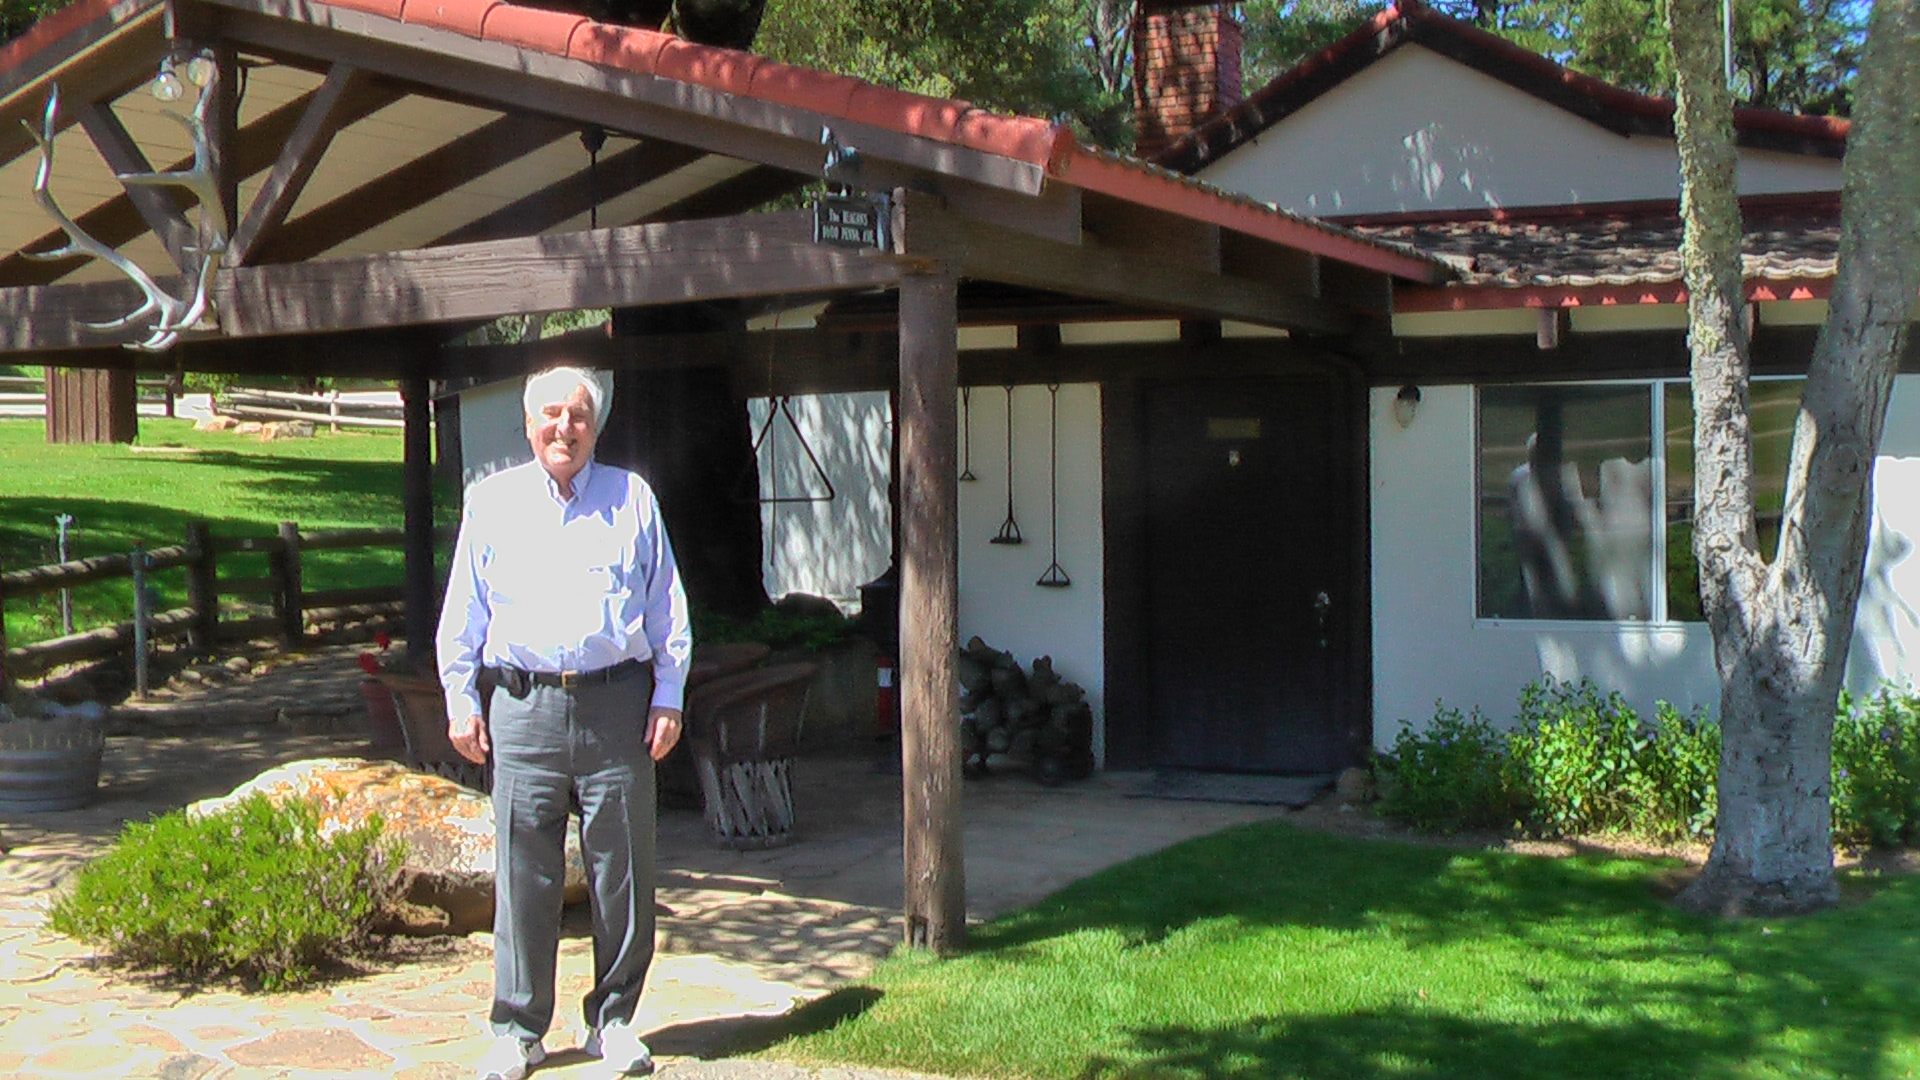 Donn dears in front of reagan ranch house